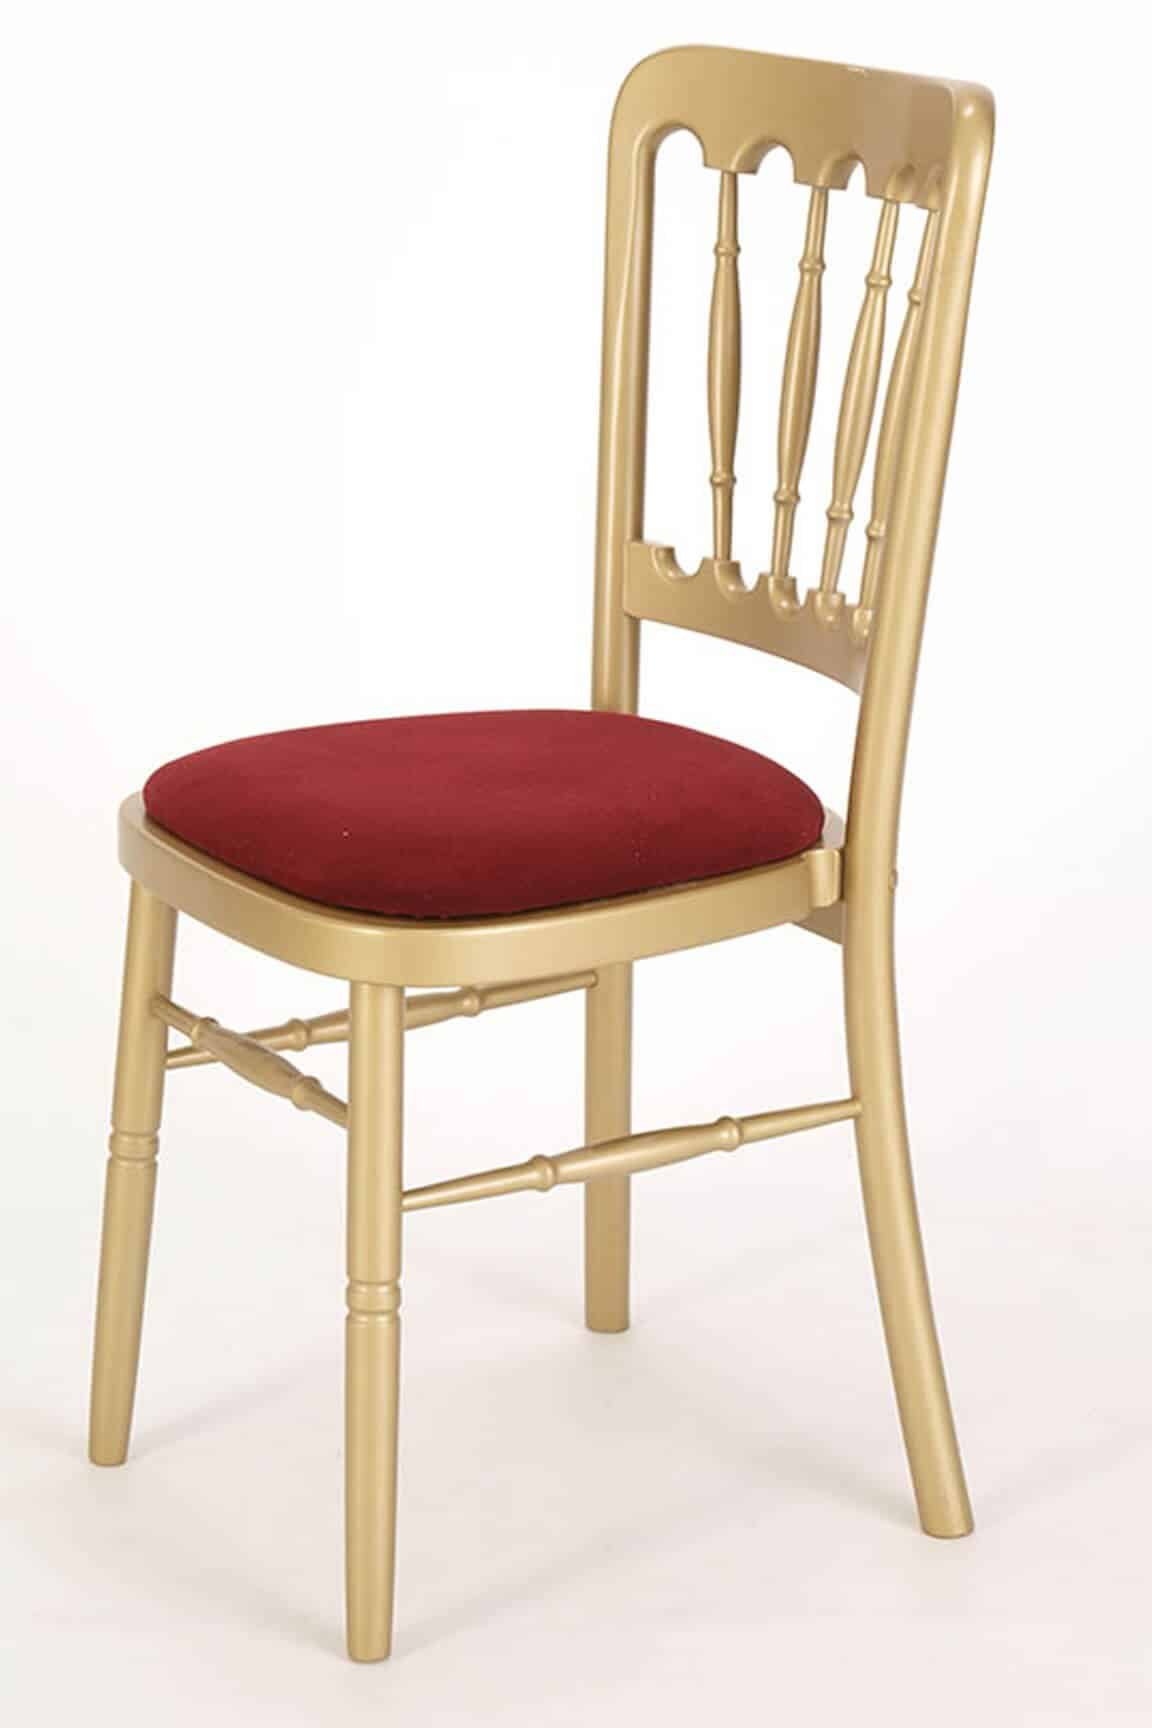 Gold and Red Cheltenham Banqueting Chair For Hire Herts Beds and Bucks